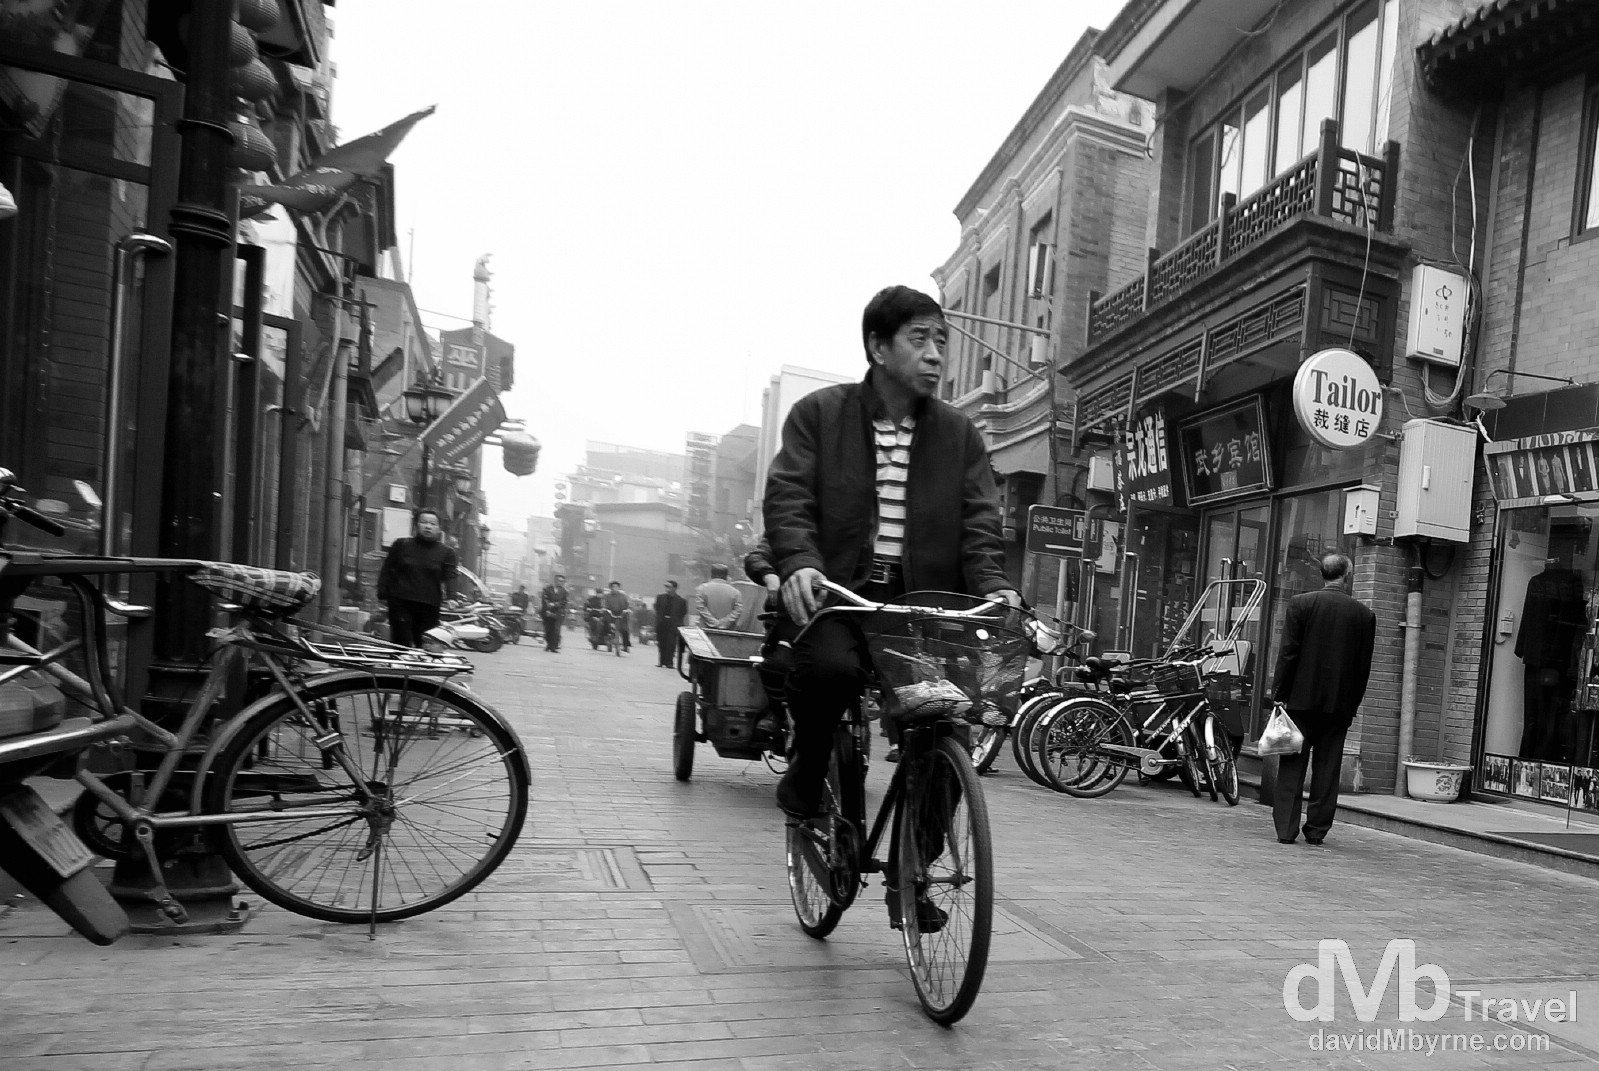 Cycling in the Qianmen district of Beijing, China. October 26th 2012.